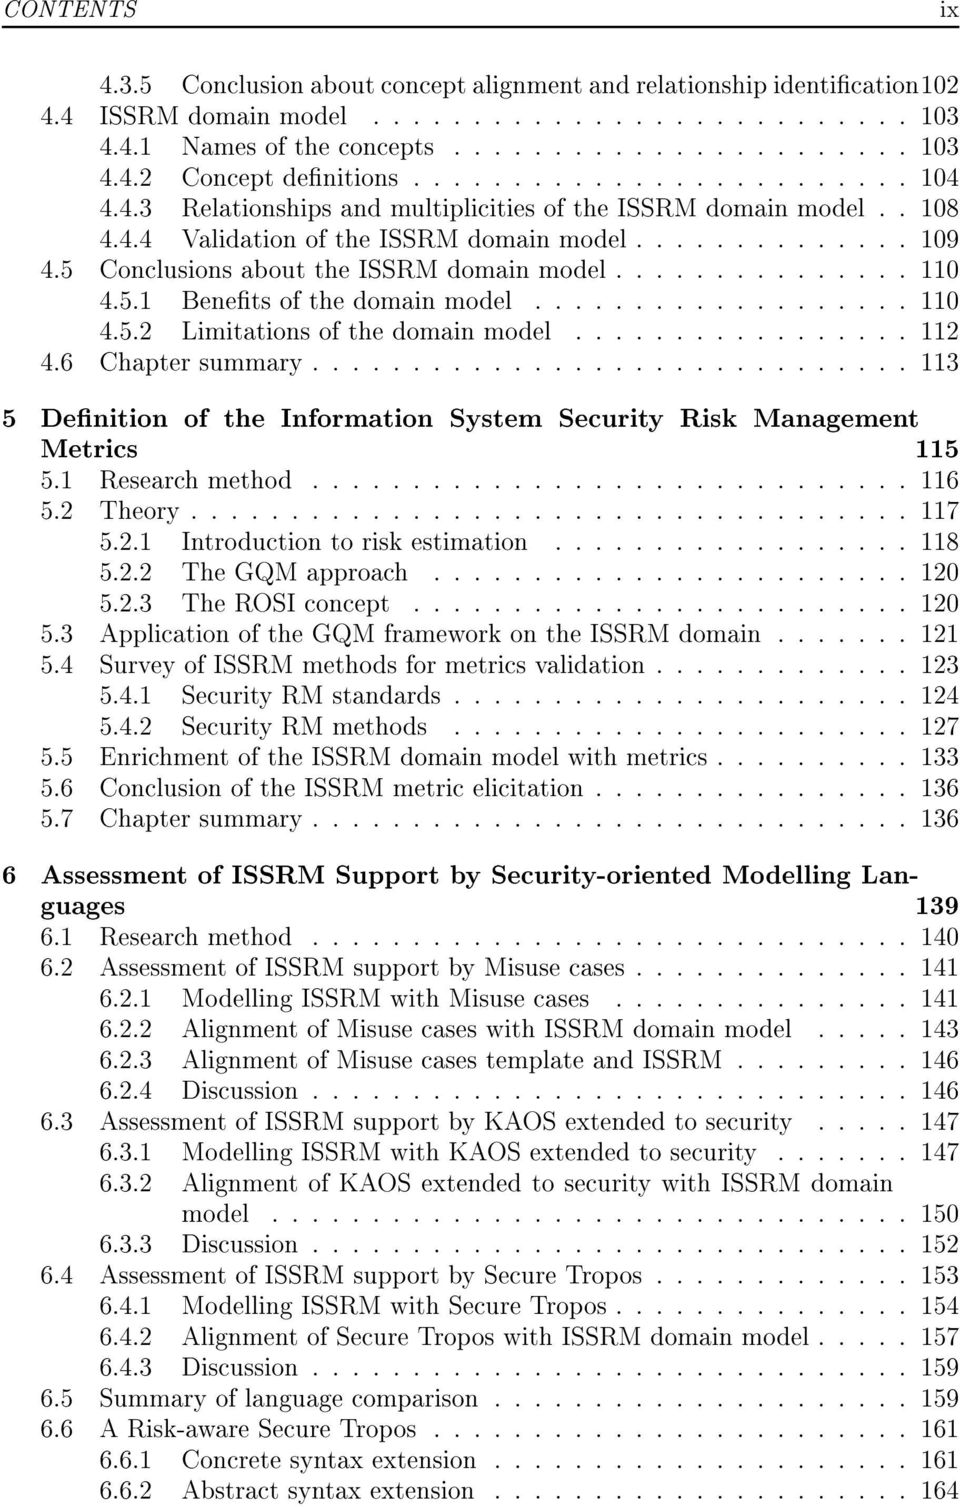 5 Conclusions about the ISSRM domain model............... 110 4.5.1 Benets of the domain model................... 110 4.5.2 Limitations of the domain model................. 112 4.6 Chapter summary.